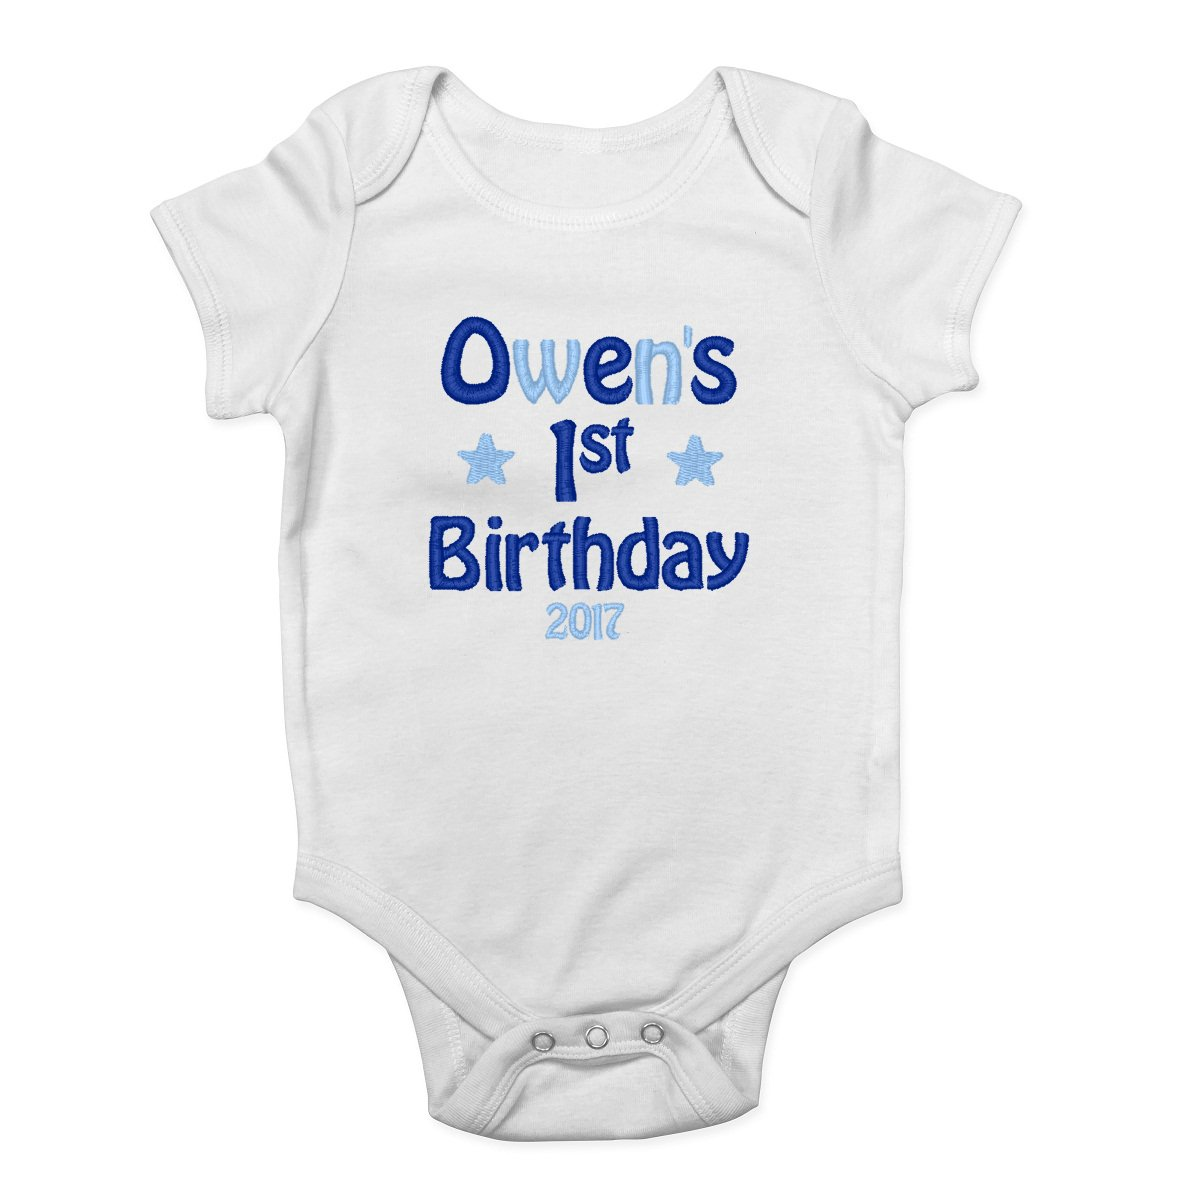 Boys Peter Rabbit Personalised Printed Babygrow//Bodysuit with your message